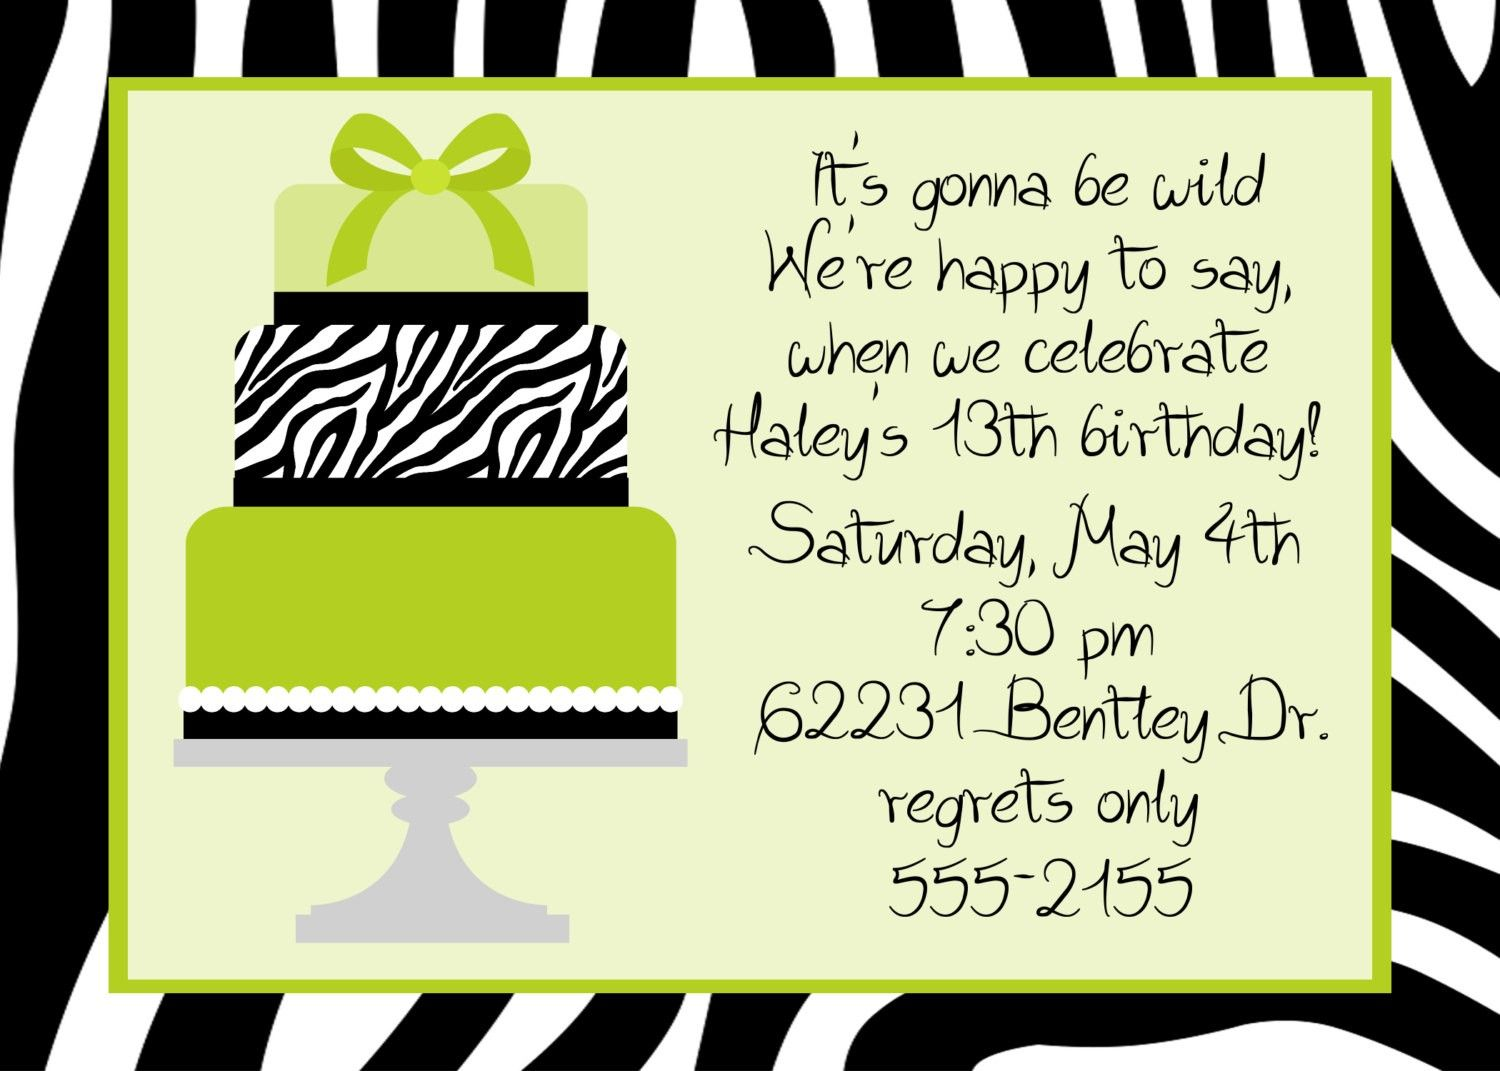 Black and white themed party invitations wording black and white black and white themed party invitations wording black and white birthday httpwww filmwisefo